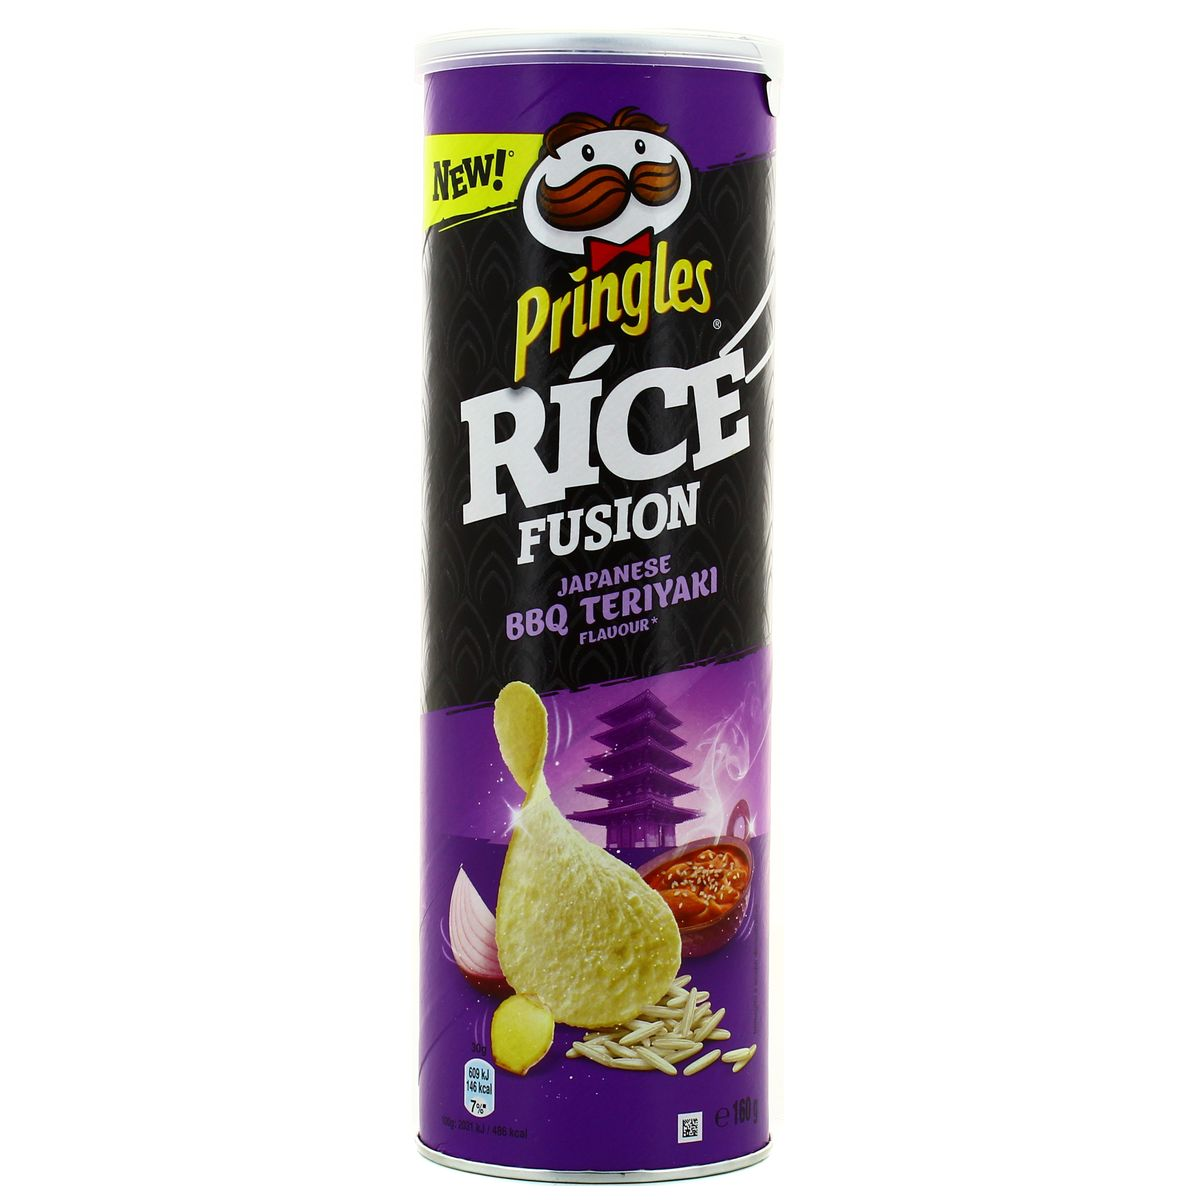 Pringle Ric Bbq Teryaki 160g